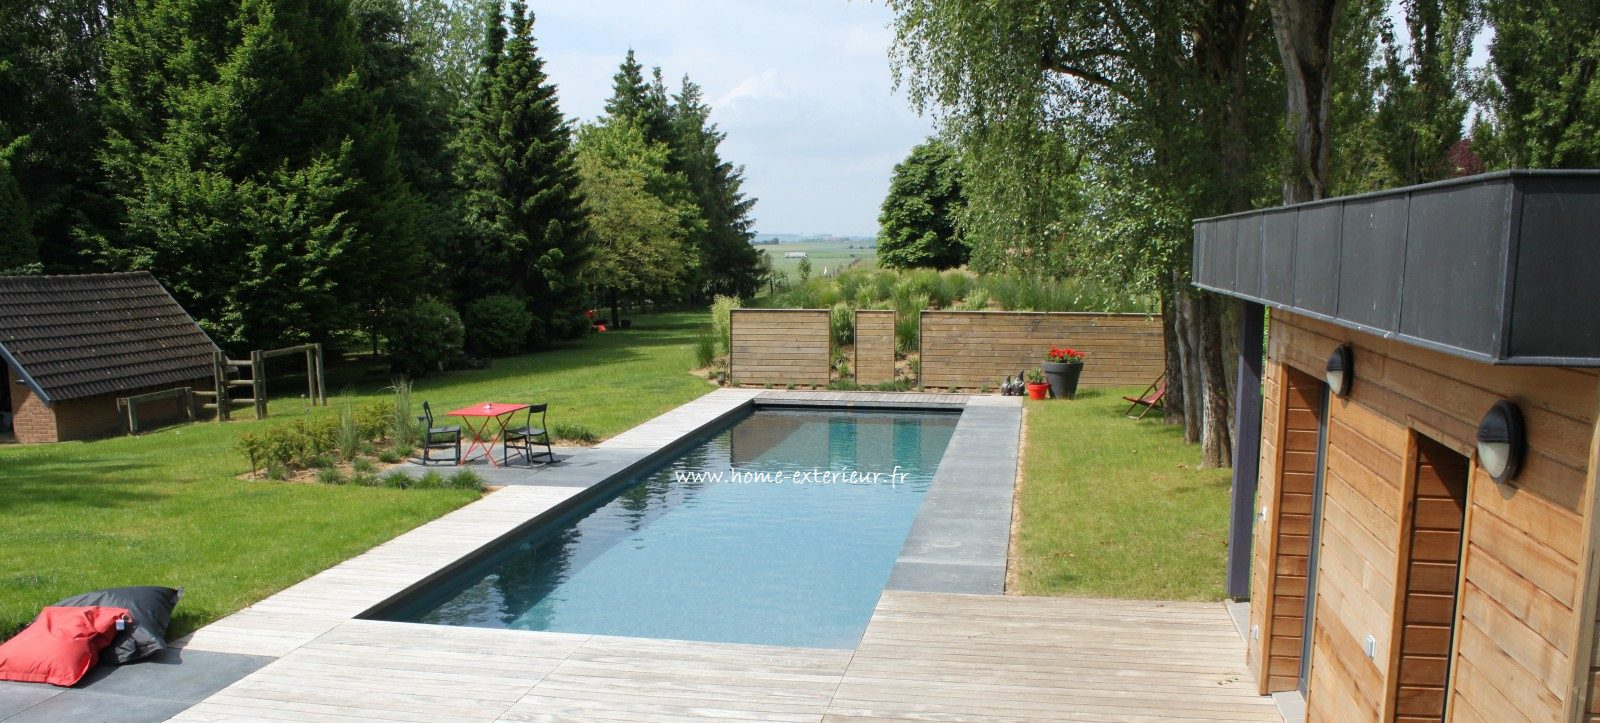 Architecte paysagiste terrasses jardins nord lille for Agencement piscine